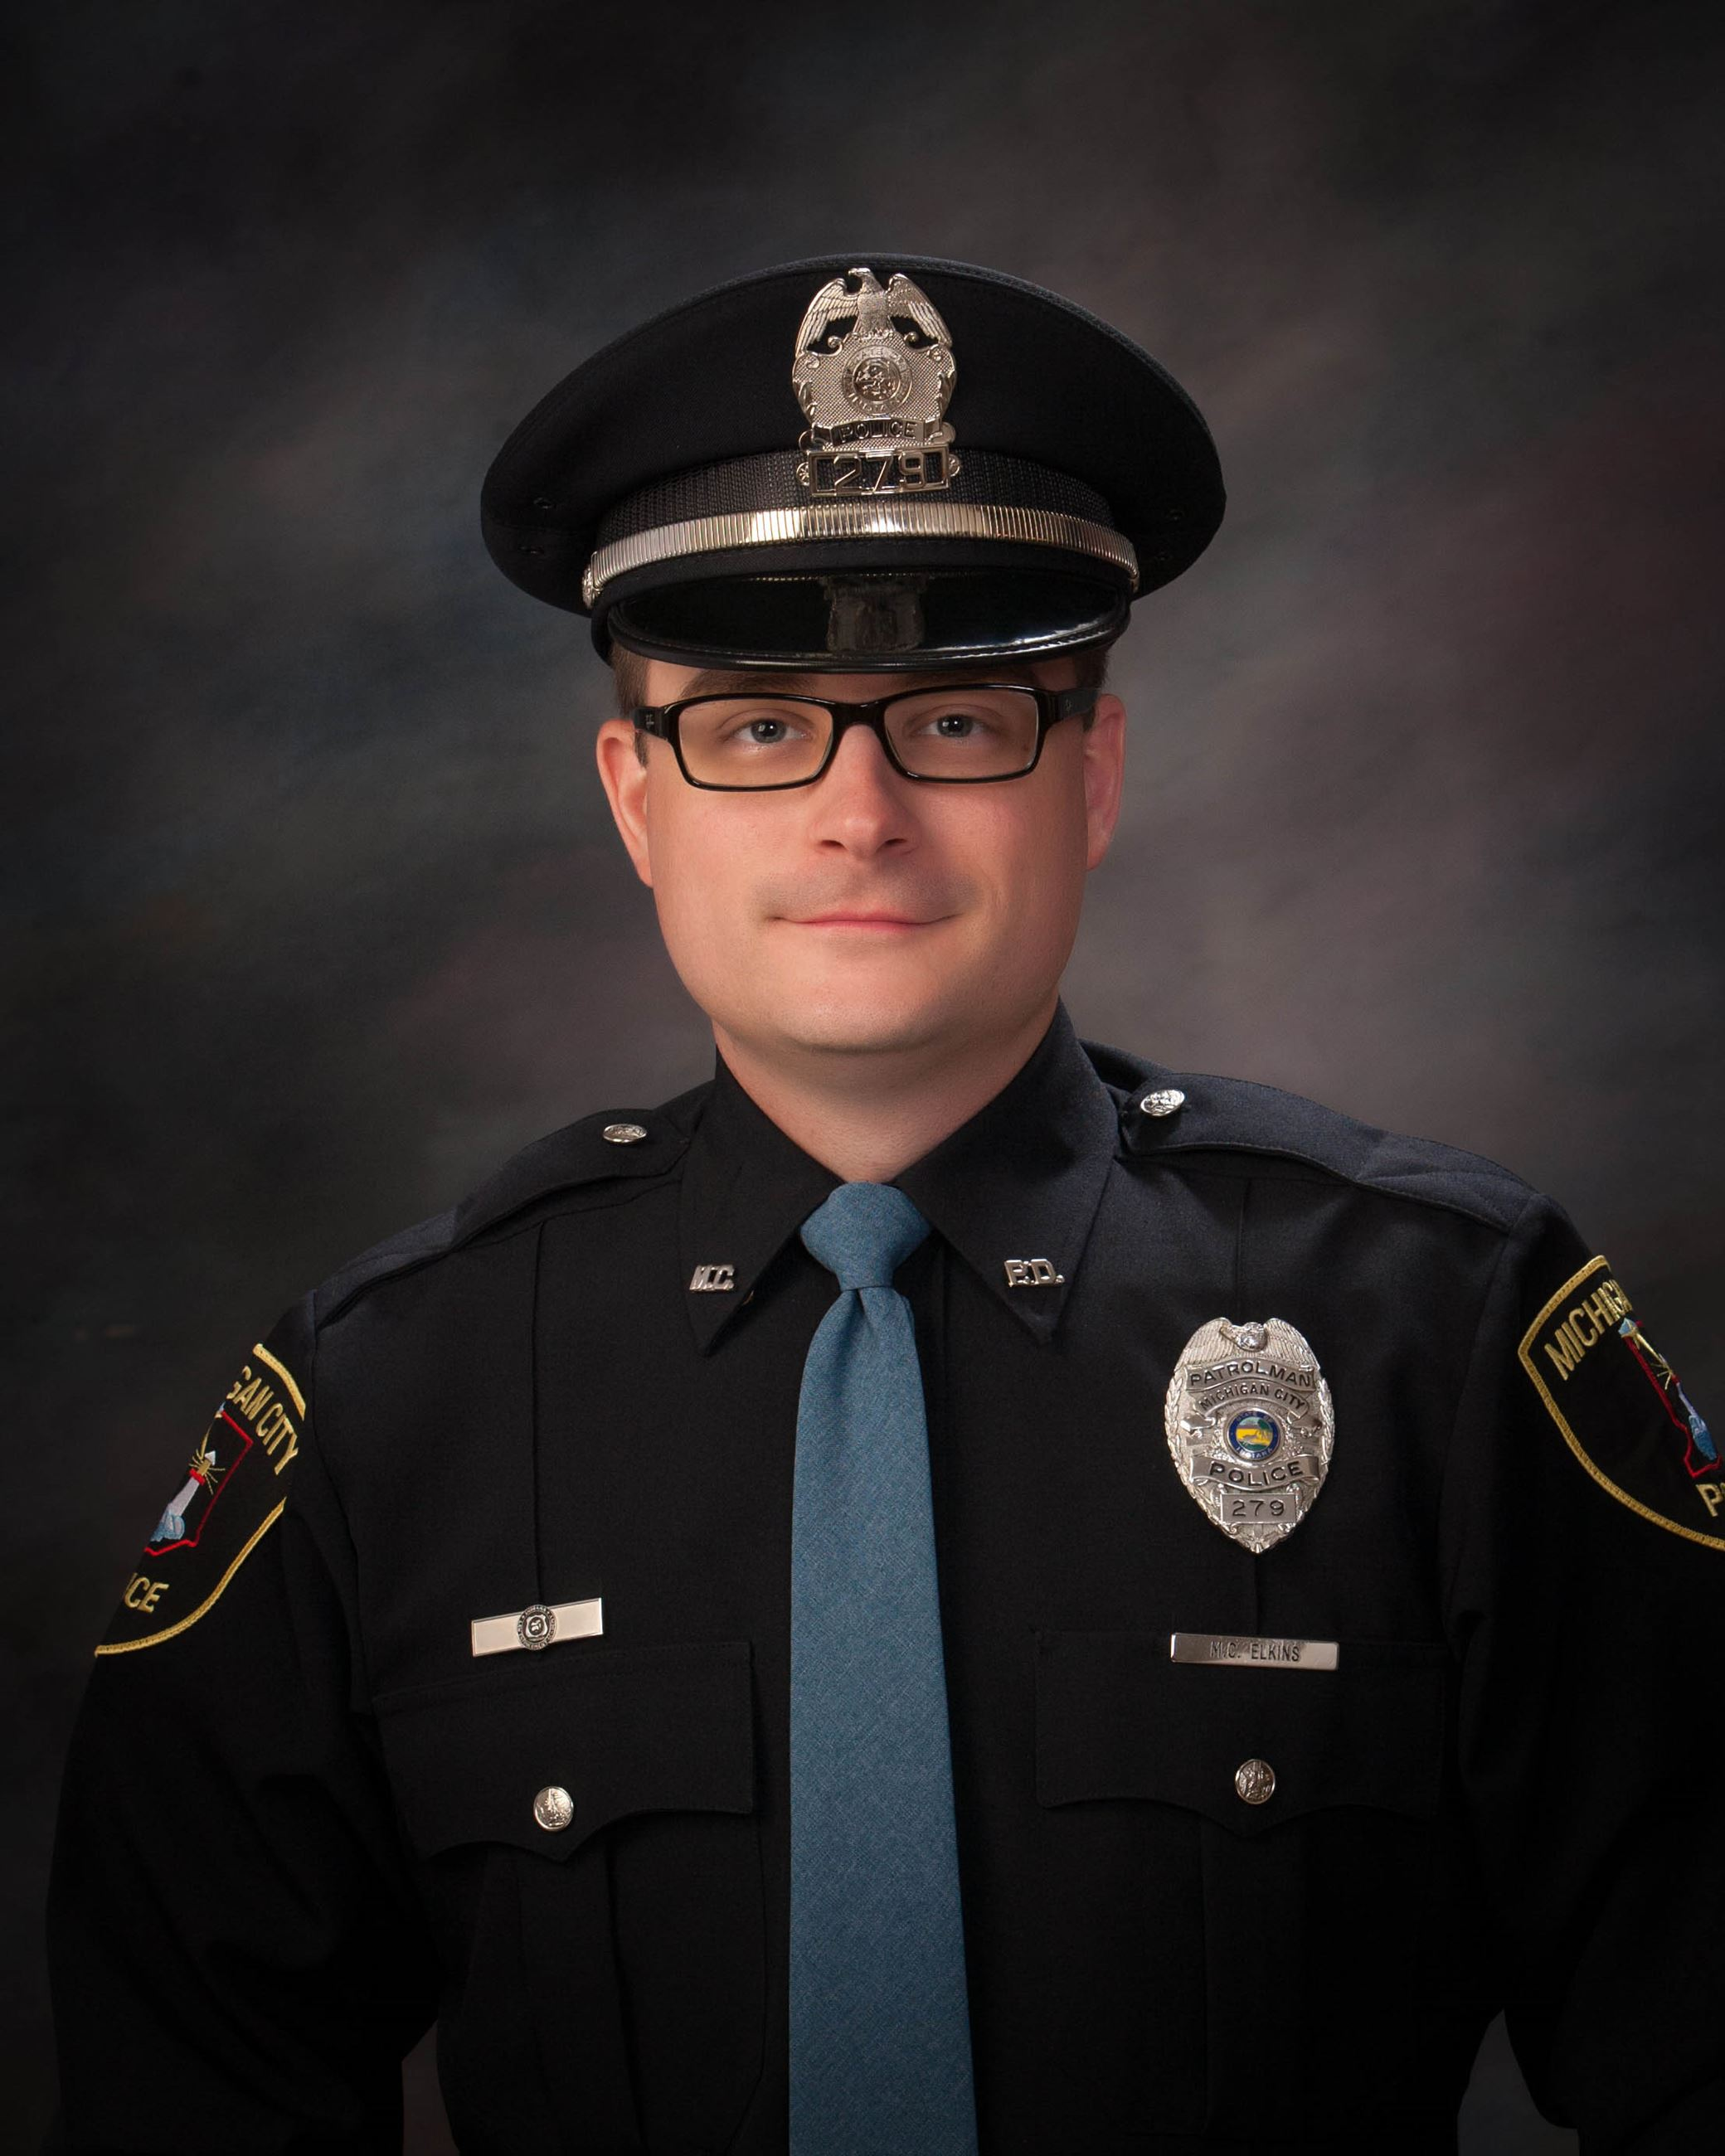 Officer Michael Elkins